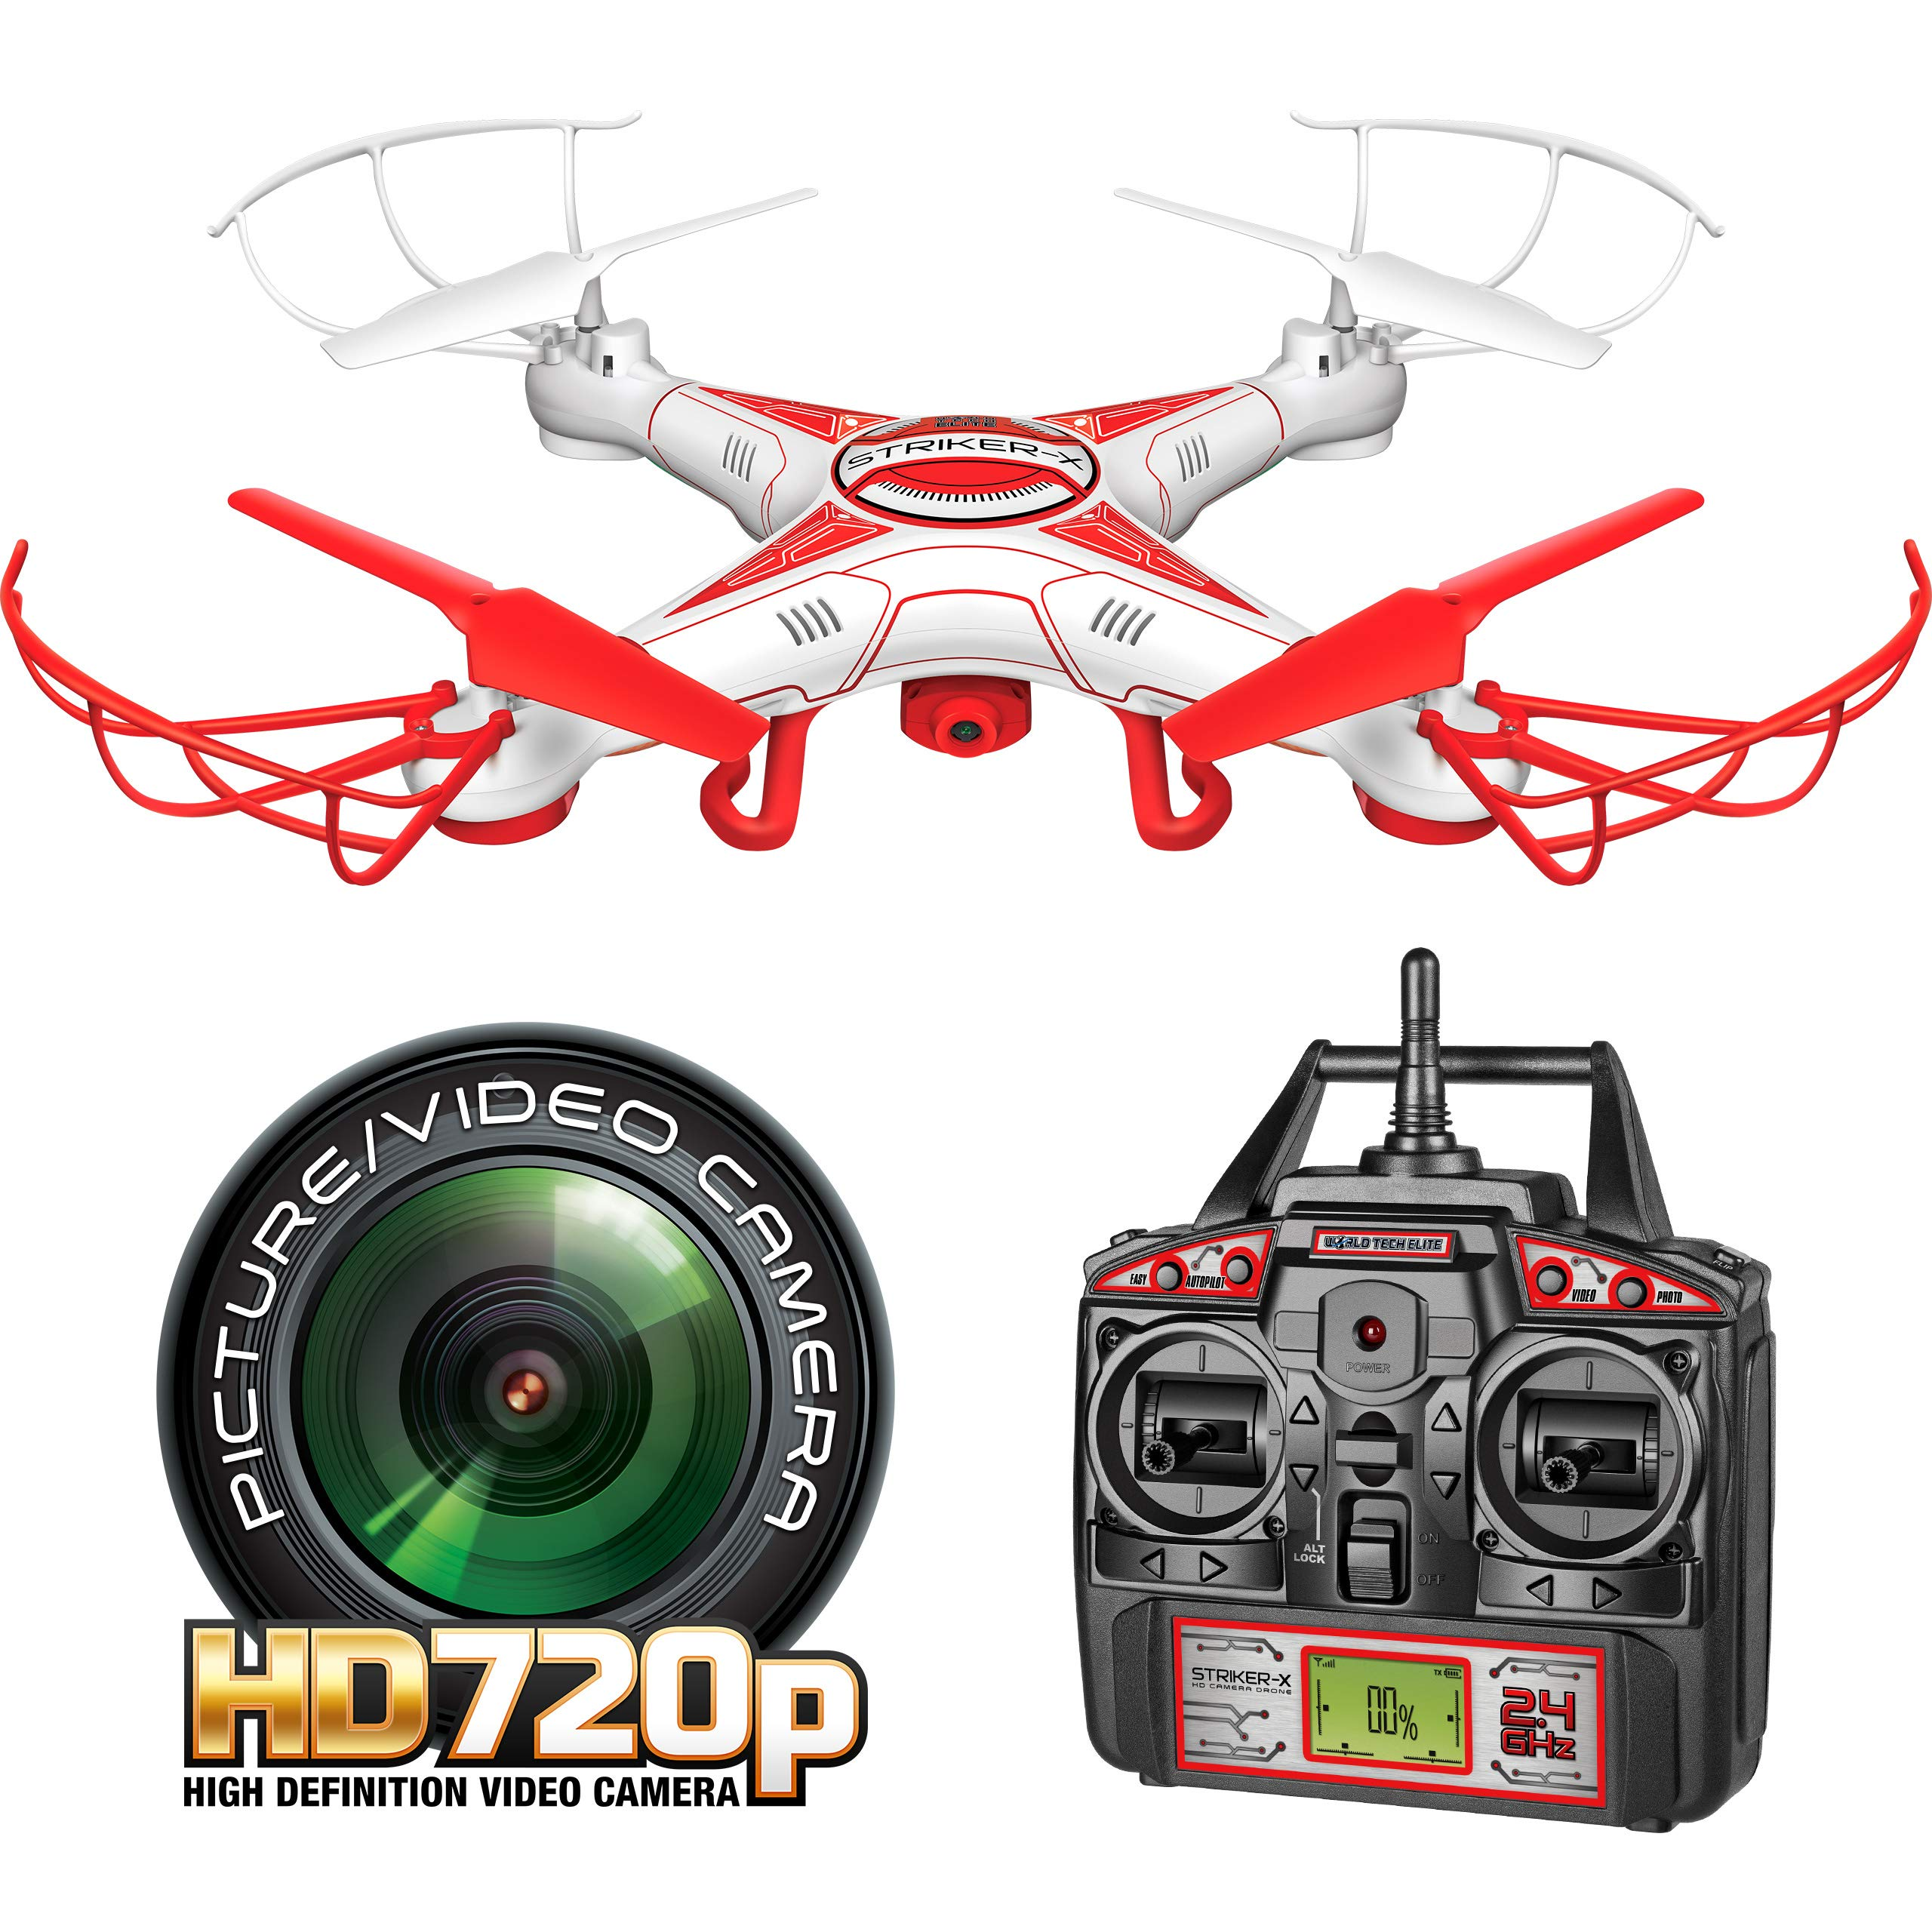 World Tech Toys Striker-X HD Camera Drone 2.4Ghz 4.5Ch HD Picture/Video Camera RC Quadcopter Vehicle, Red/White, 12 x 12 x 2.75 by World Tech Toys